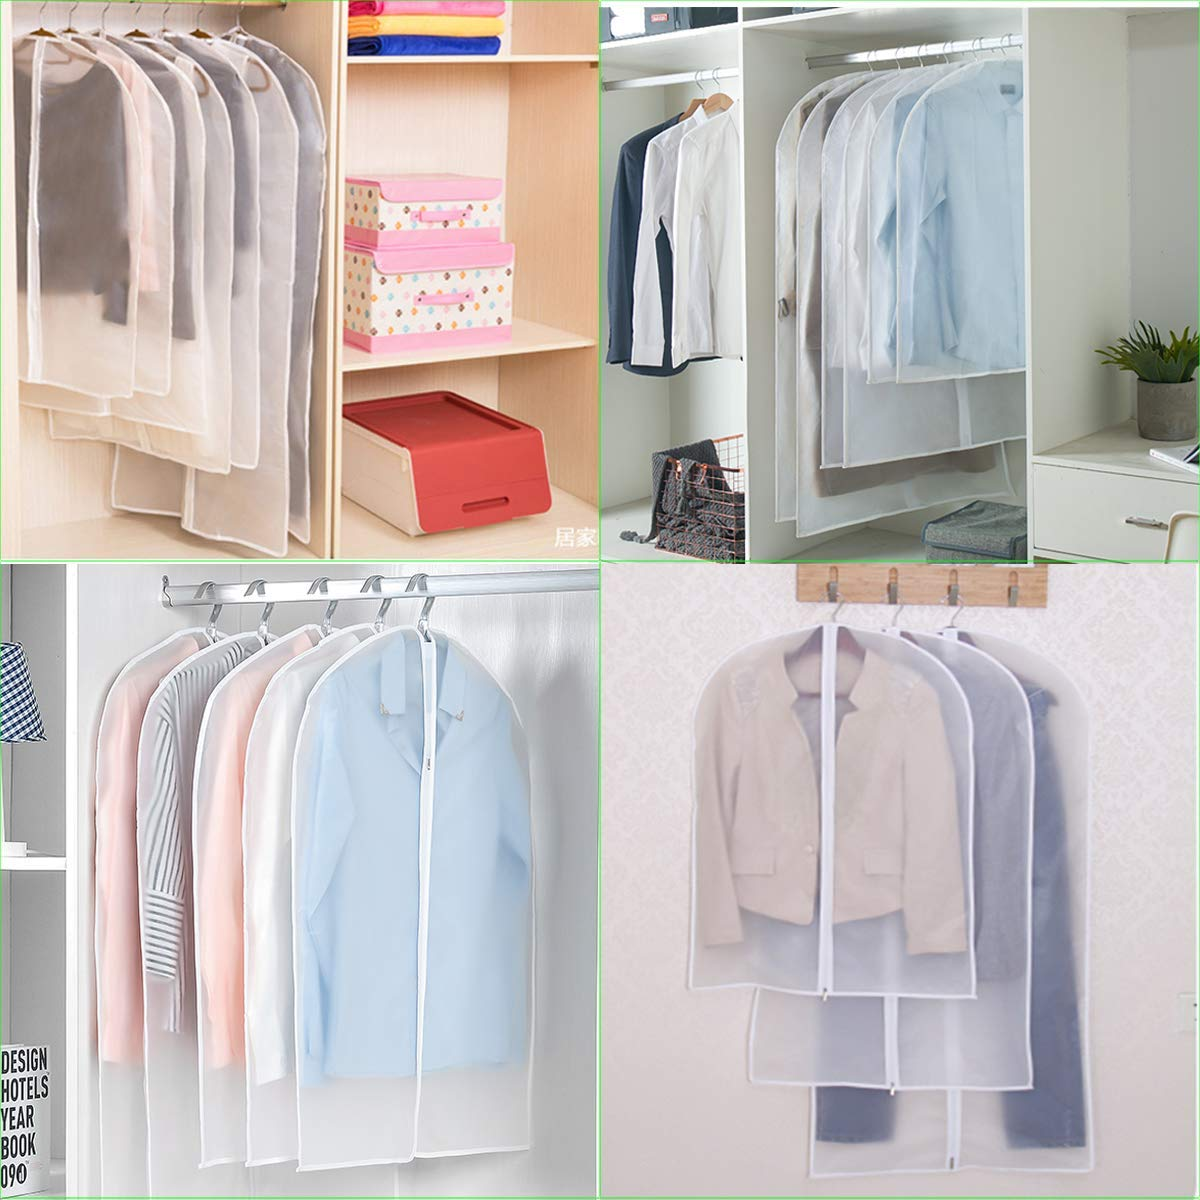 Garment Bag Clear Suit Dress Moth Proof Garment Bags Dust Cover White Breathable Bag with Full Zipper for Clothes Closet Storage Pack of 6 by homebags (Image #6)